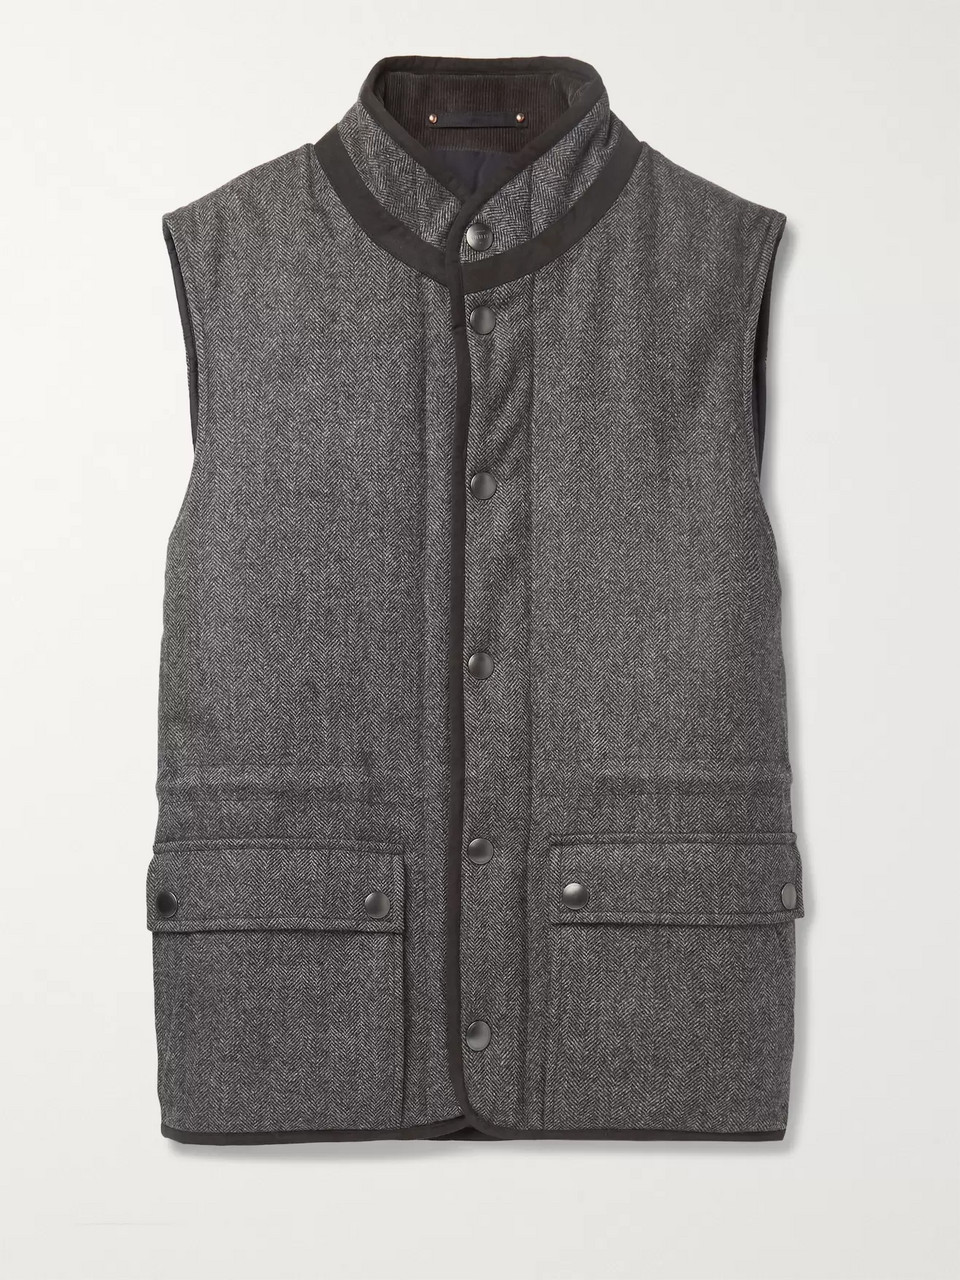 Private White V.C. + Woolmark Herringbone Merino Wool Gilet